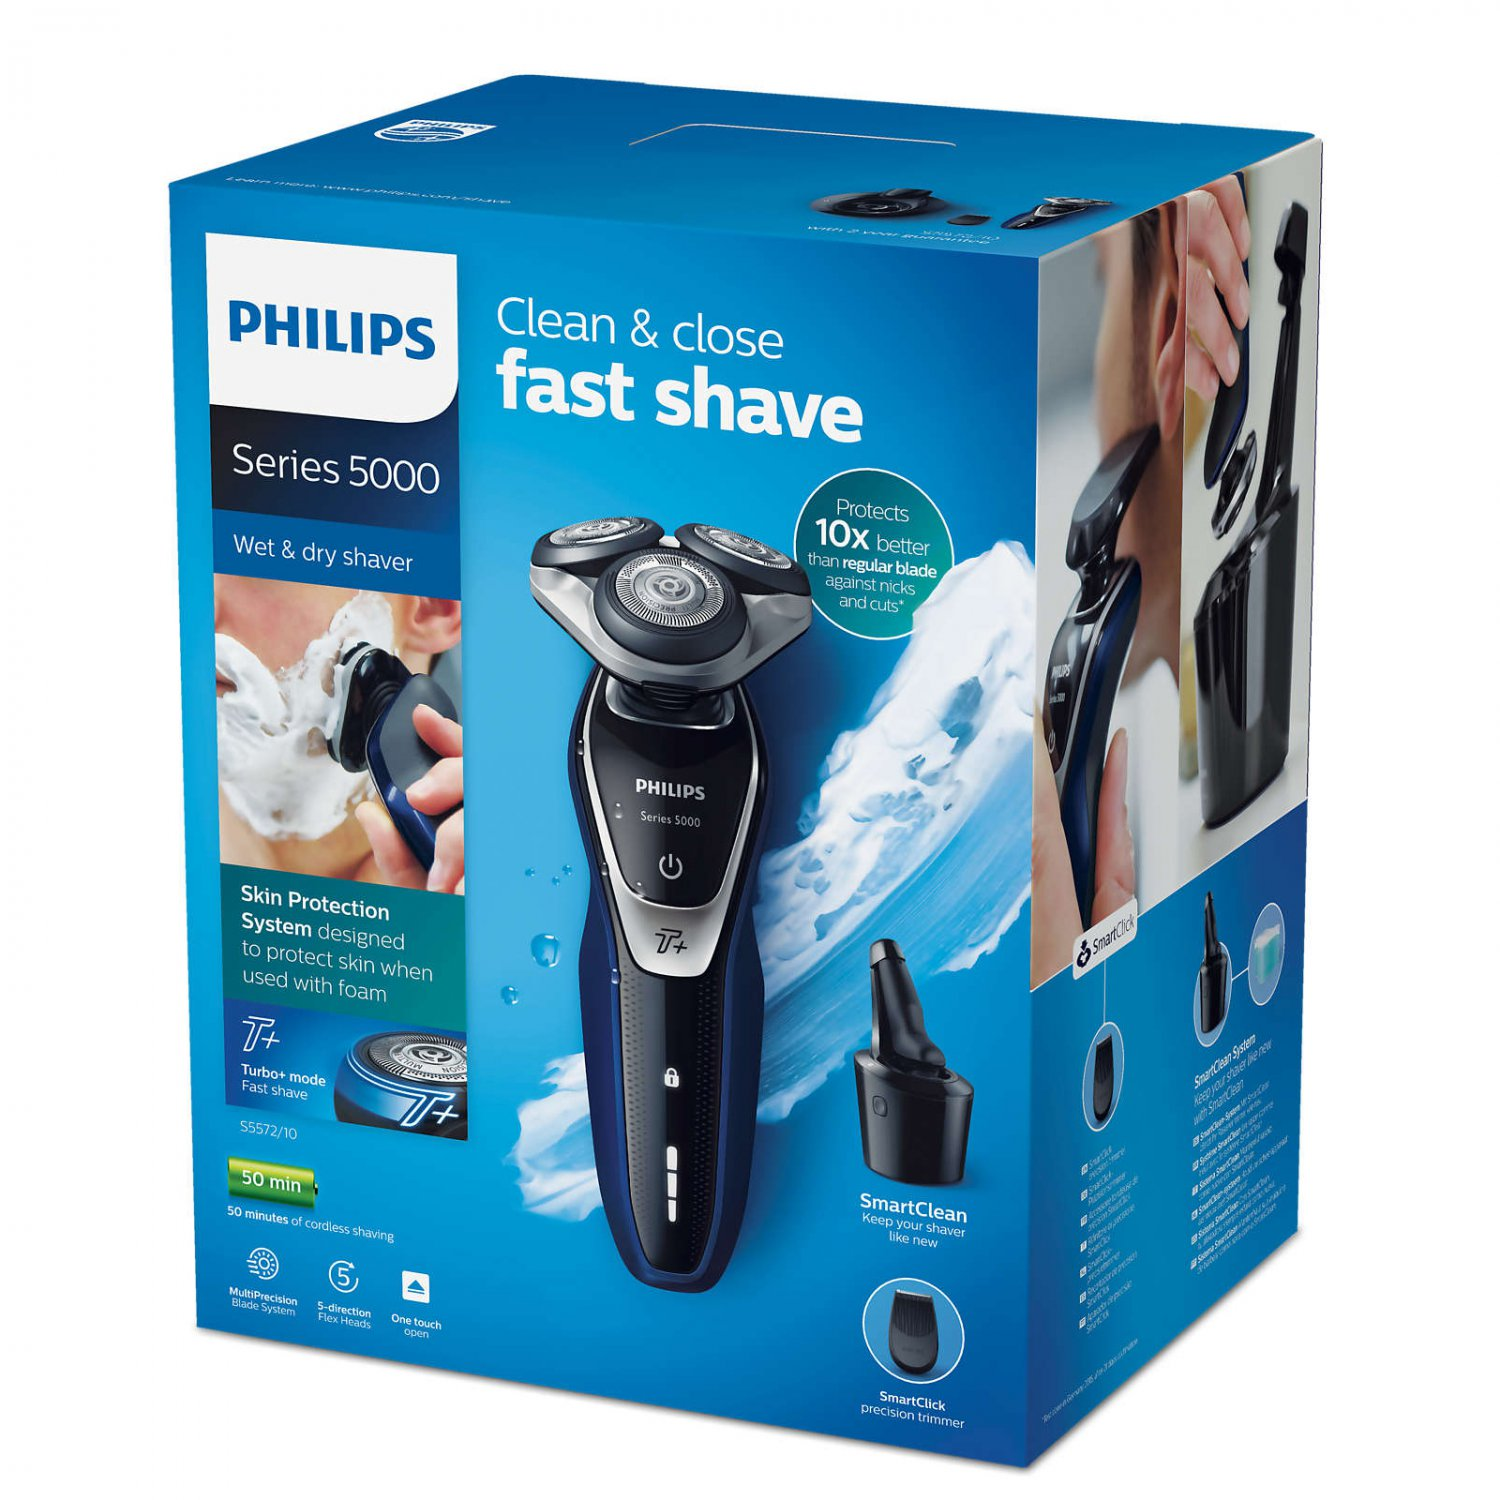 New Philips Shaver Series 5000 Wet & Dry Electric Shaver With SmartClean S5572/10